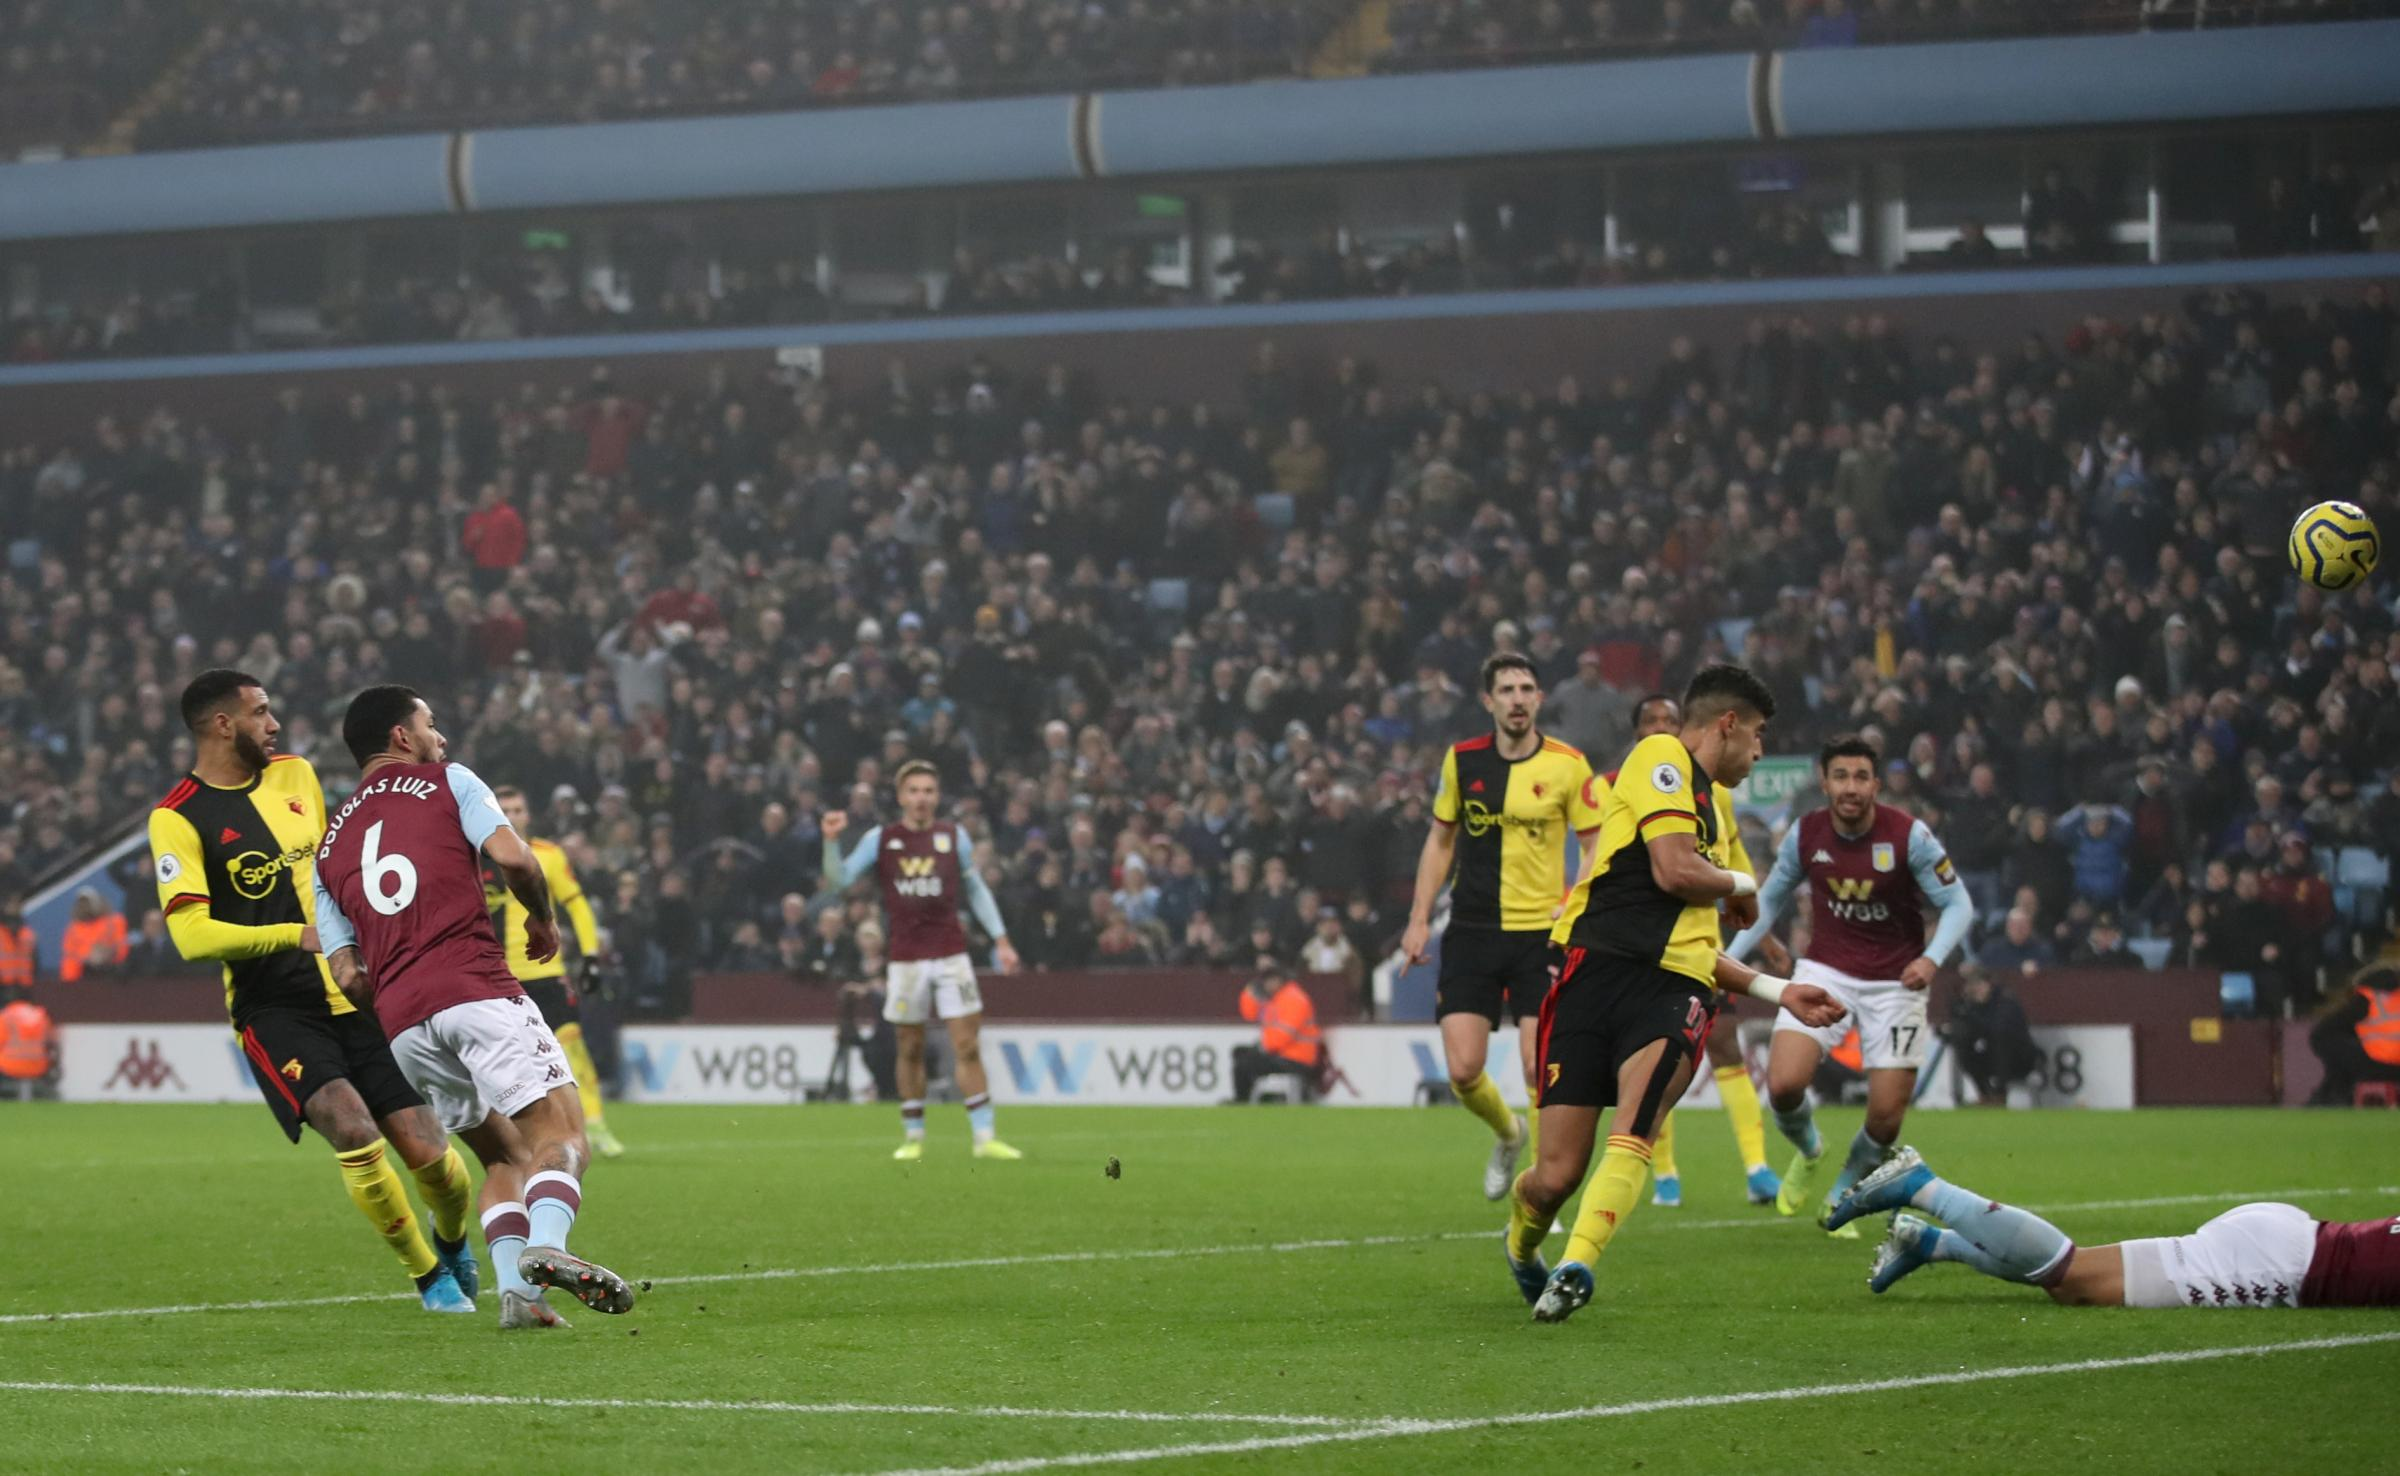 Watford players rated after defeat to Aston Villa